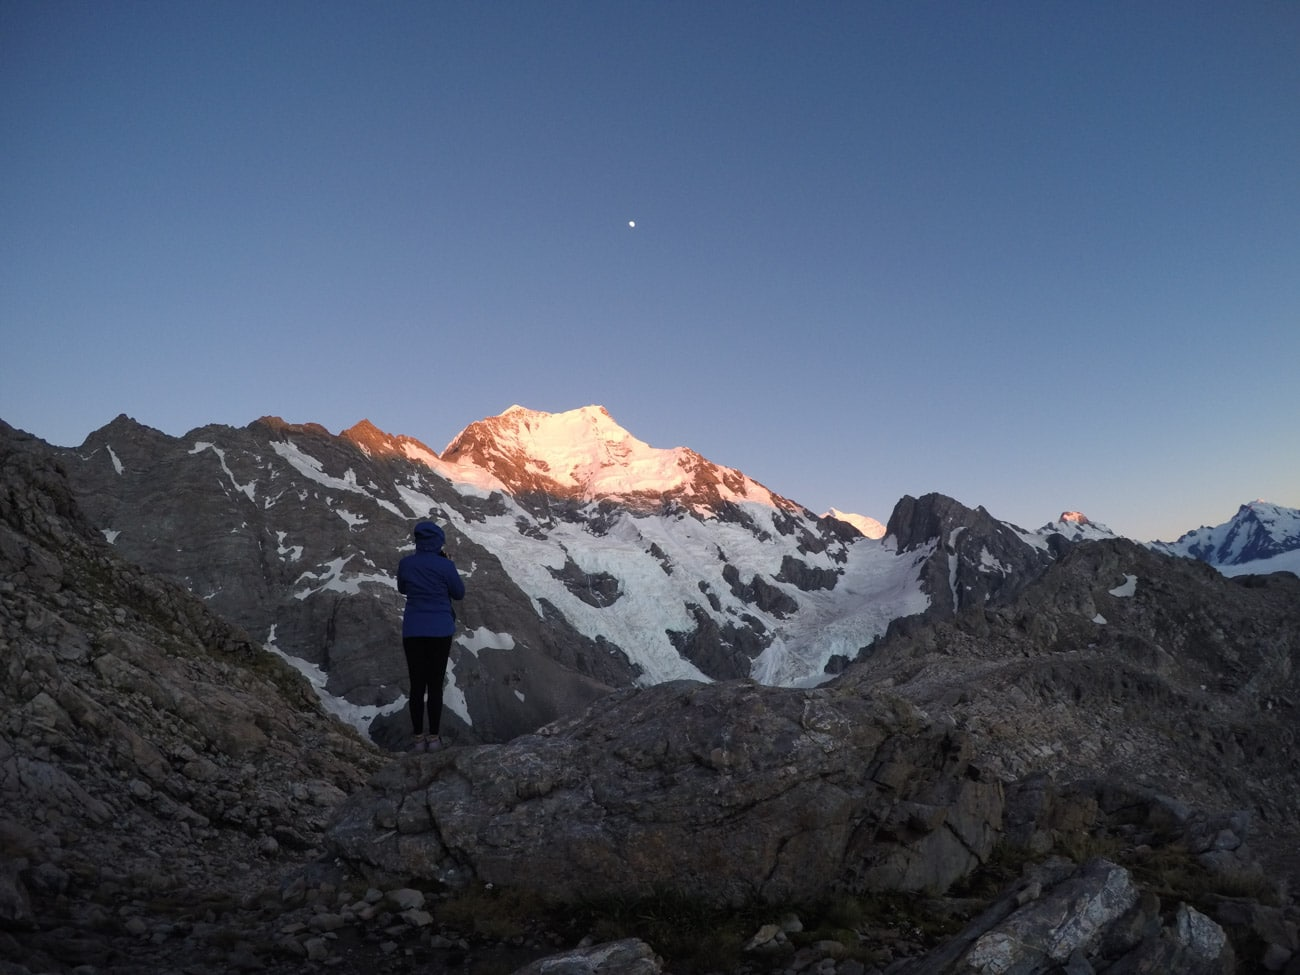 The Caroline Face of Mount Cook in New Zealand